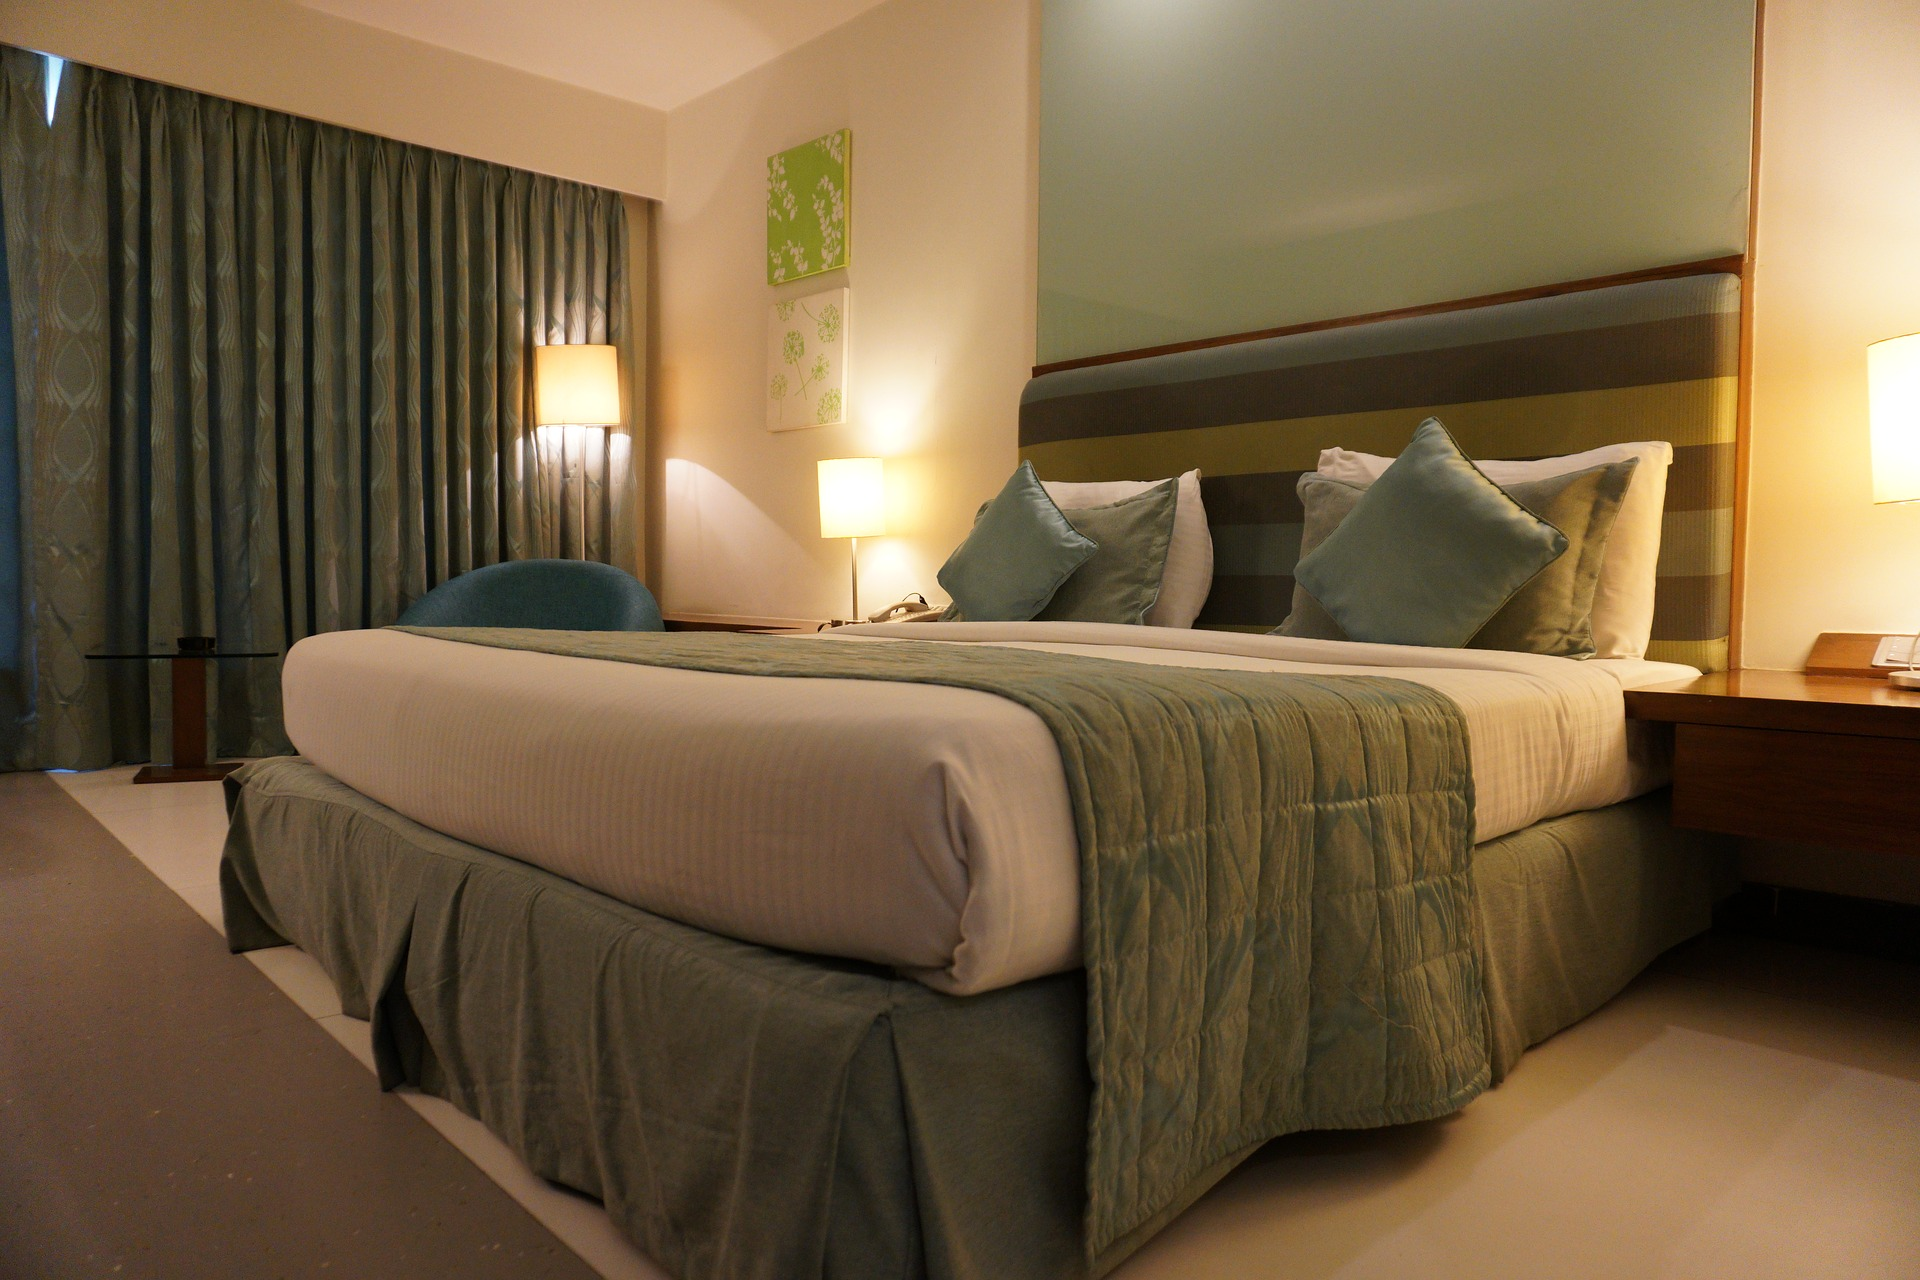 Preventing Mold and Moisture in Hotel Rooms